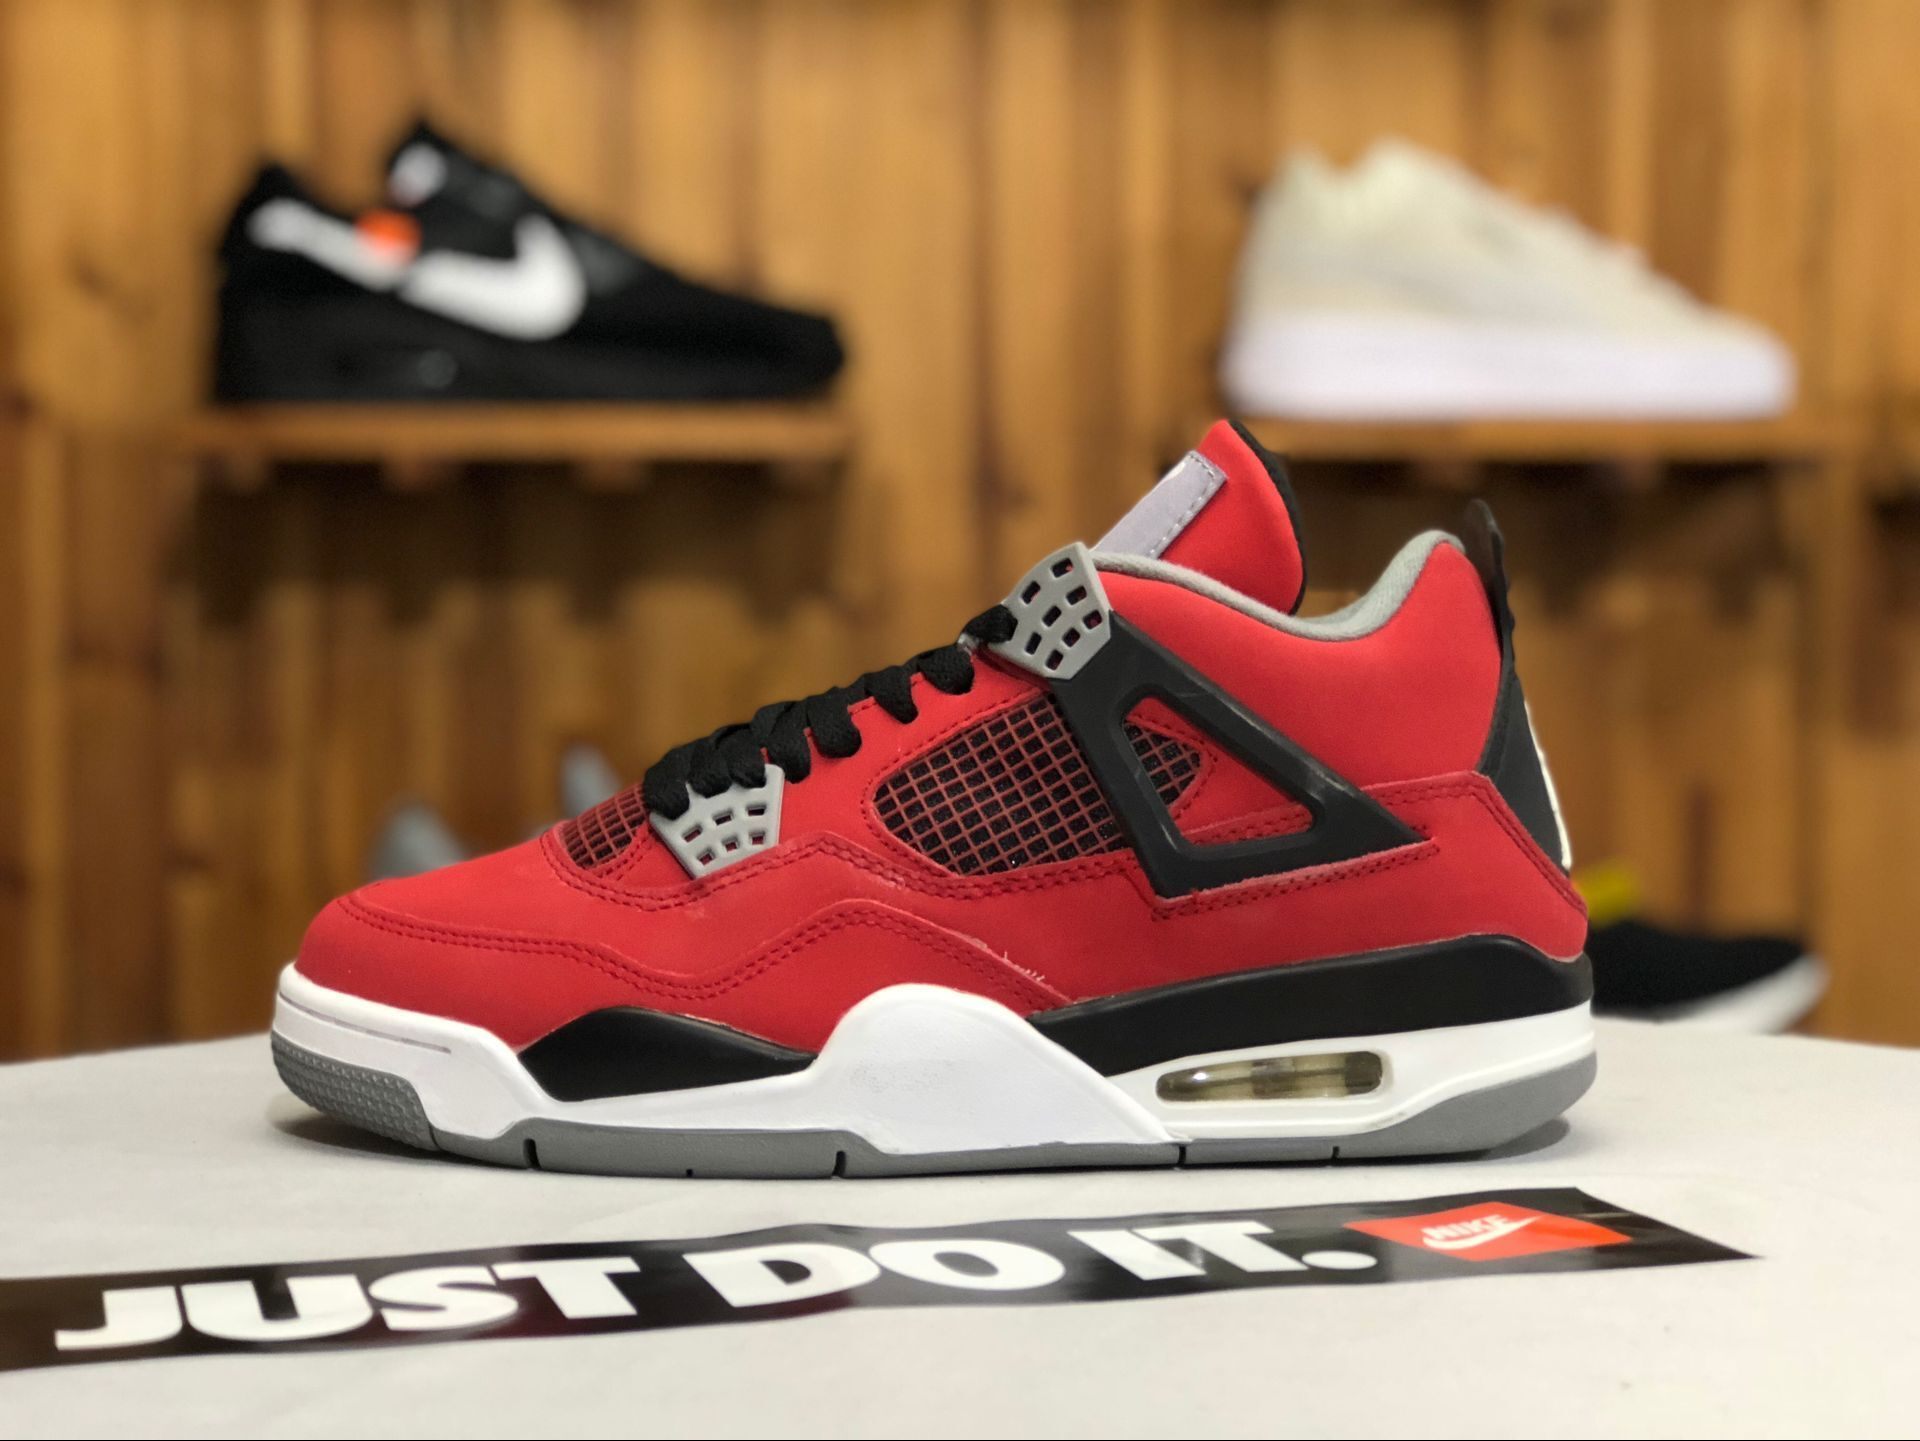 16efed3ab3c 2019 New Releases Air Jordan 4 Retro Toro Bravo Fire Red White-Black ...